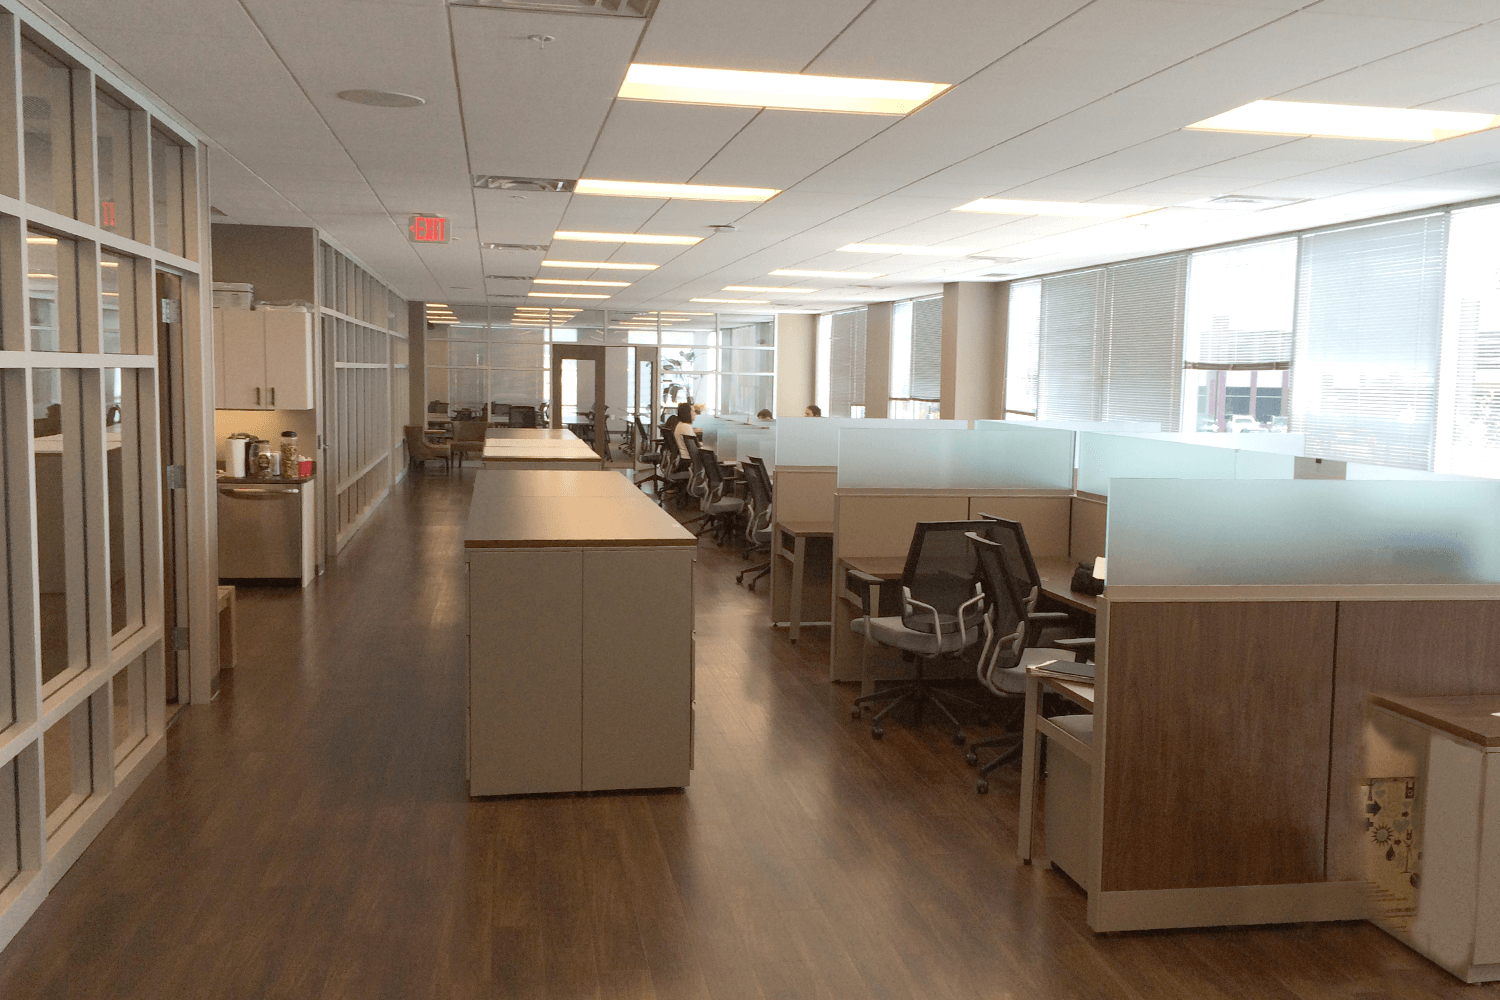 cubicles with glass dividers